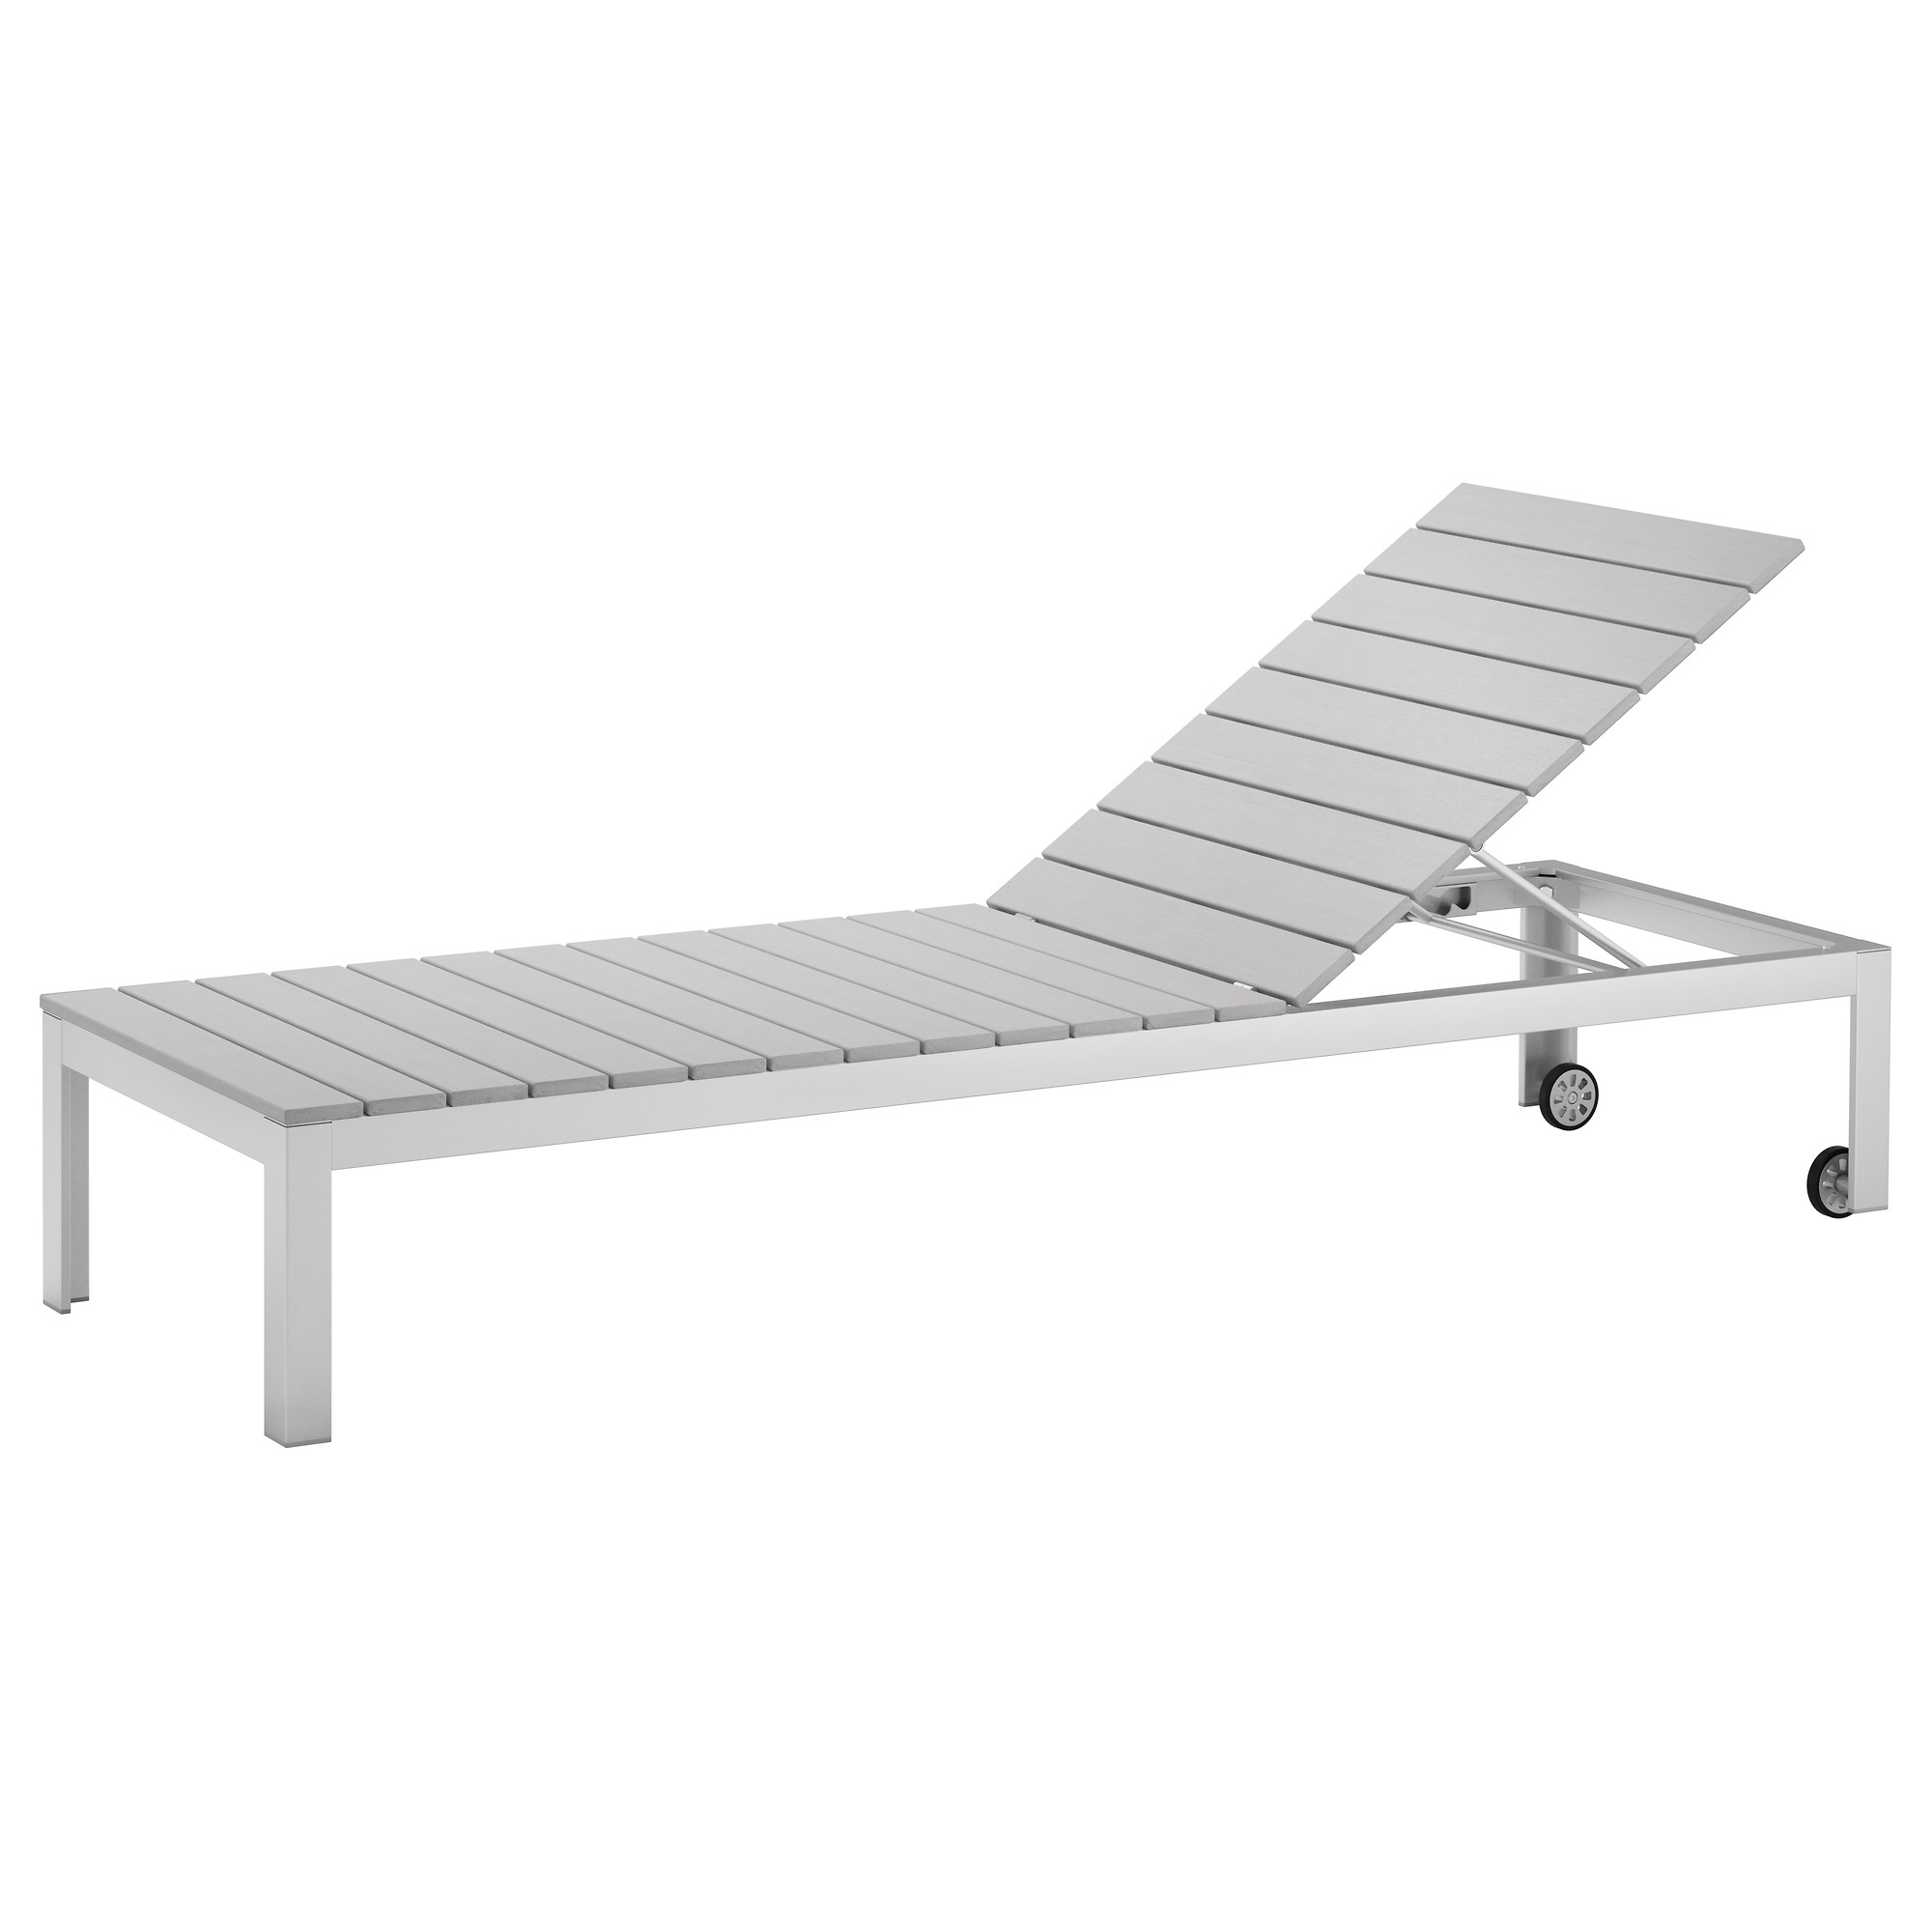 Outdoor Ikea Chaise Lounge Chairs Pertaining To Widely Used Ikea – Falster, Chaise, Gray, , , The Back Can Be Adjusted To Six (Gallery 2 of 15)